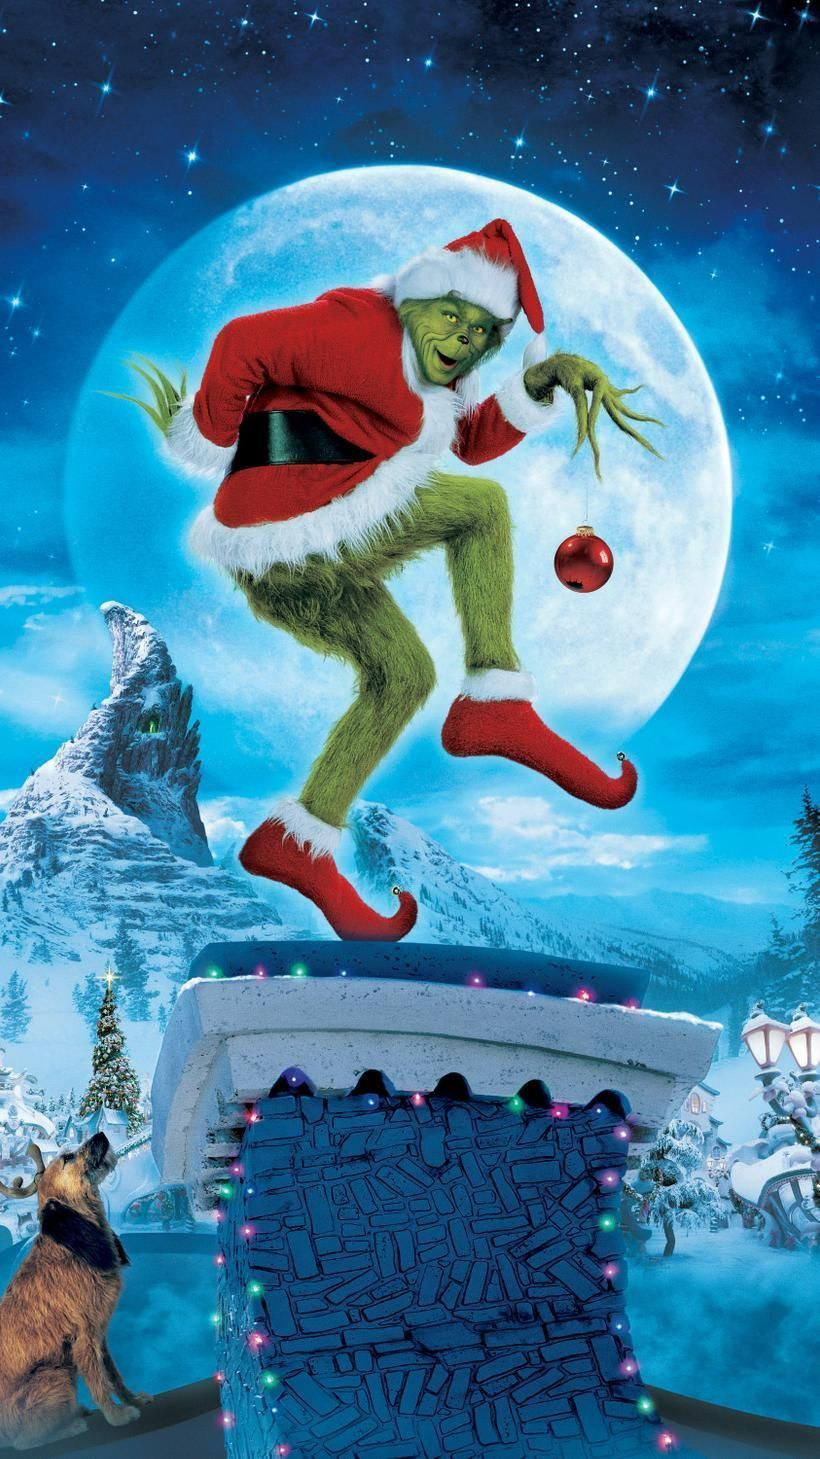 How the Grinch Stole Christmas (2000) Phone Wallpaper | Moviemania  How the Grin...#christmas #grin #grinch #moviemania #phone #stole #wallpaper